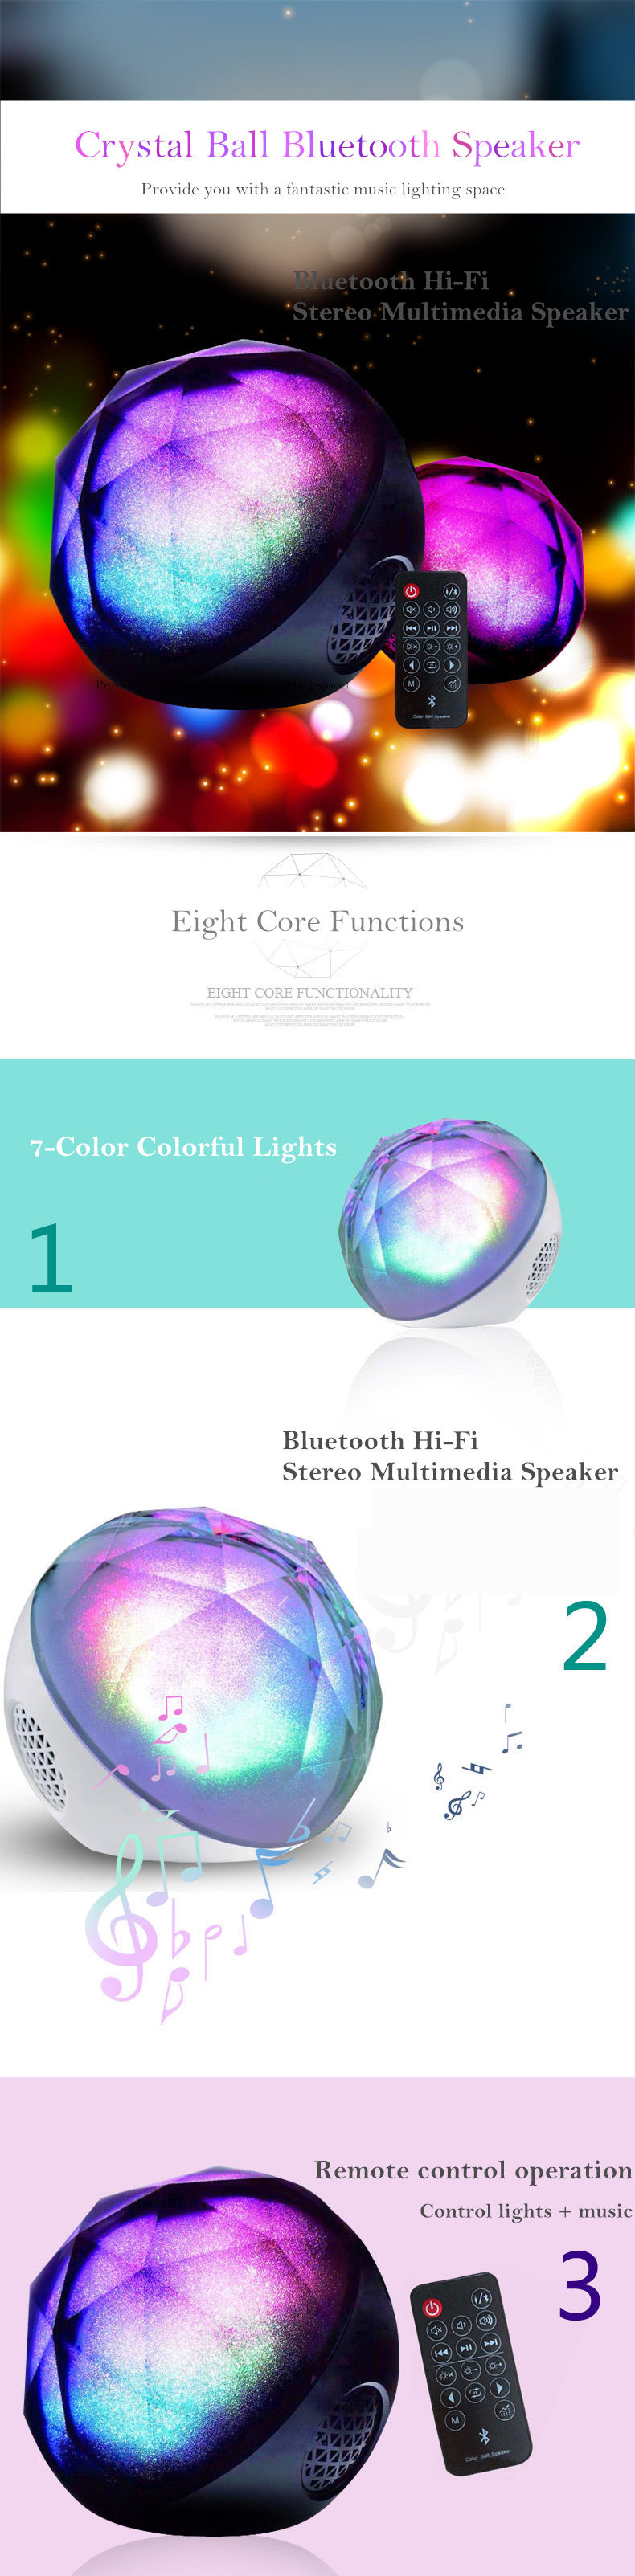 Portable Bluetooth speaker Portable Wireless Loudspeaker LED Light Crystal Ball Bluetooth Speaker Night Light USB MP3 Player04